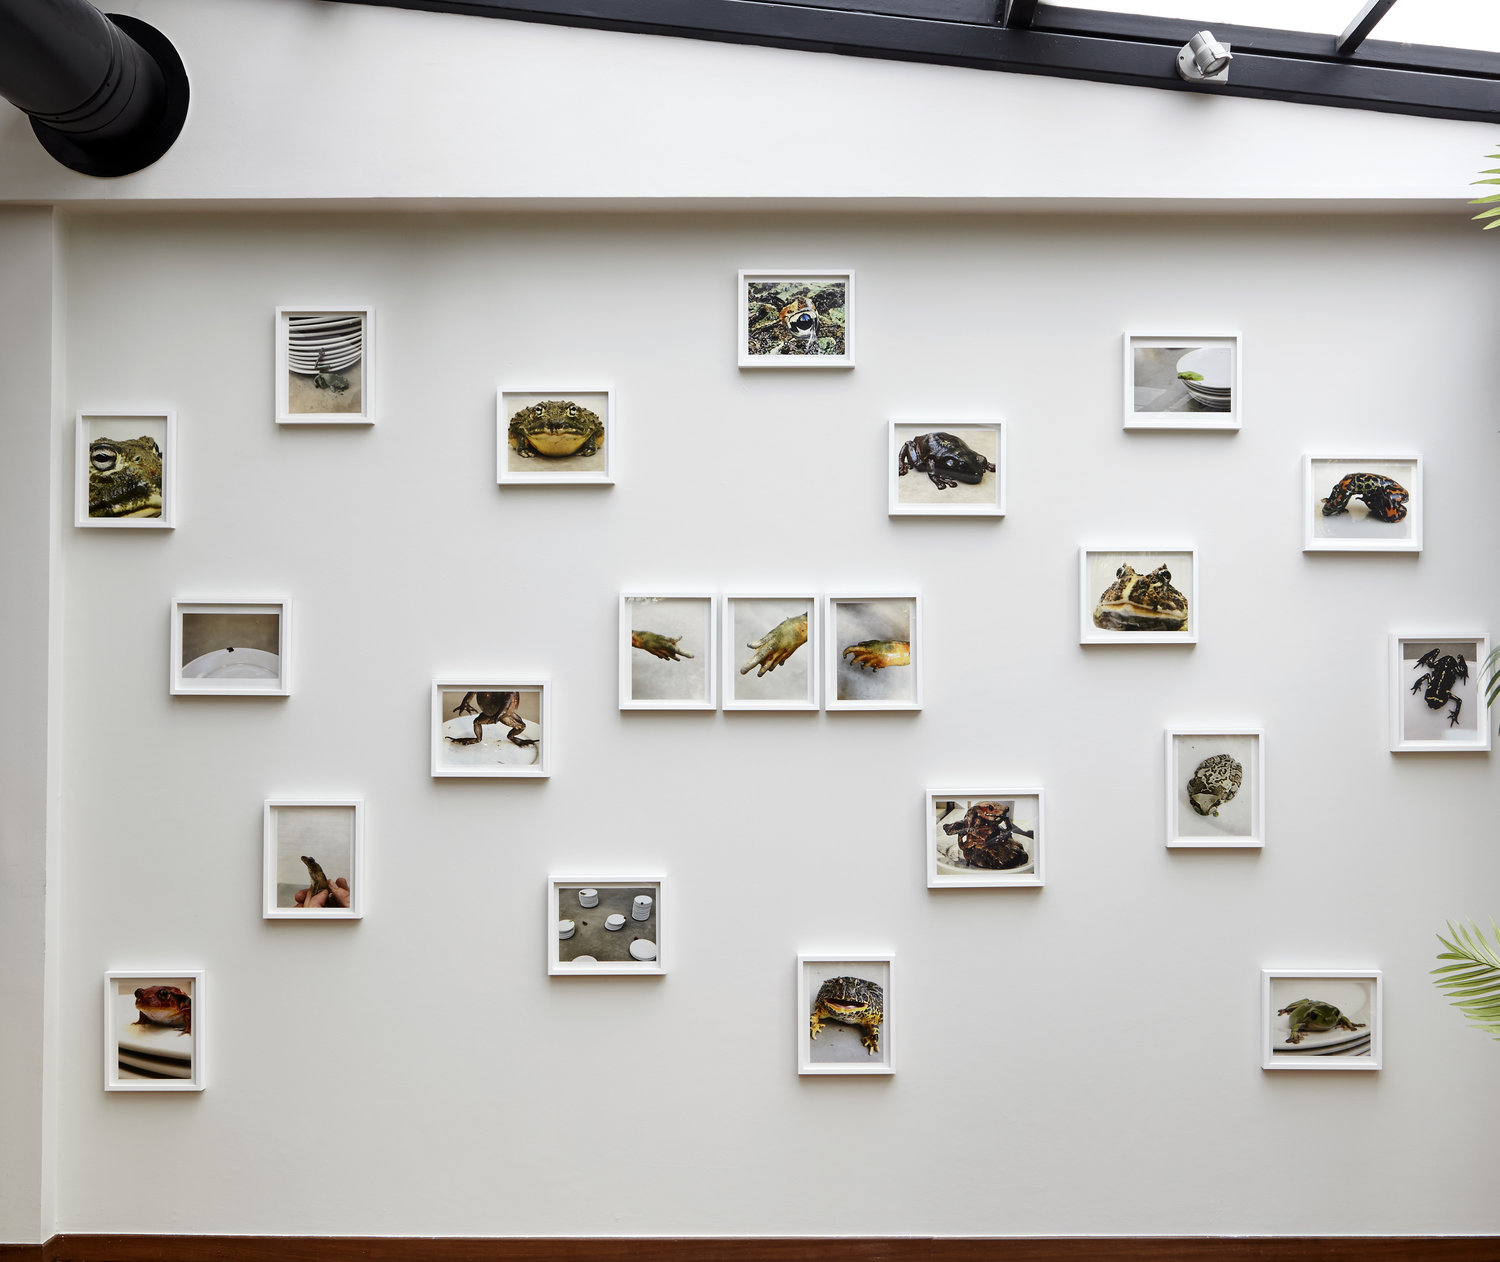 2.DH_Juergen+Teller_Frogs+and+Plates_Installation+view_2017.jpg